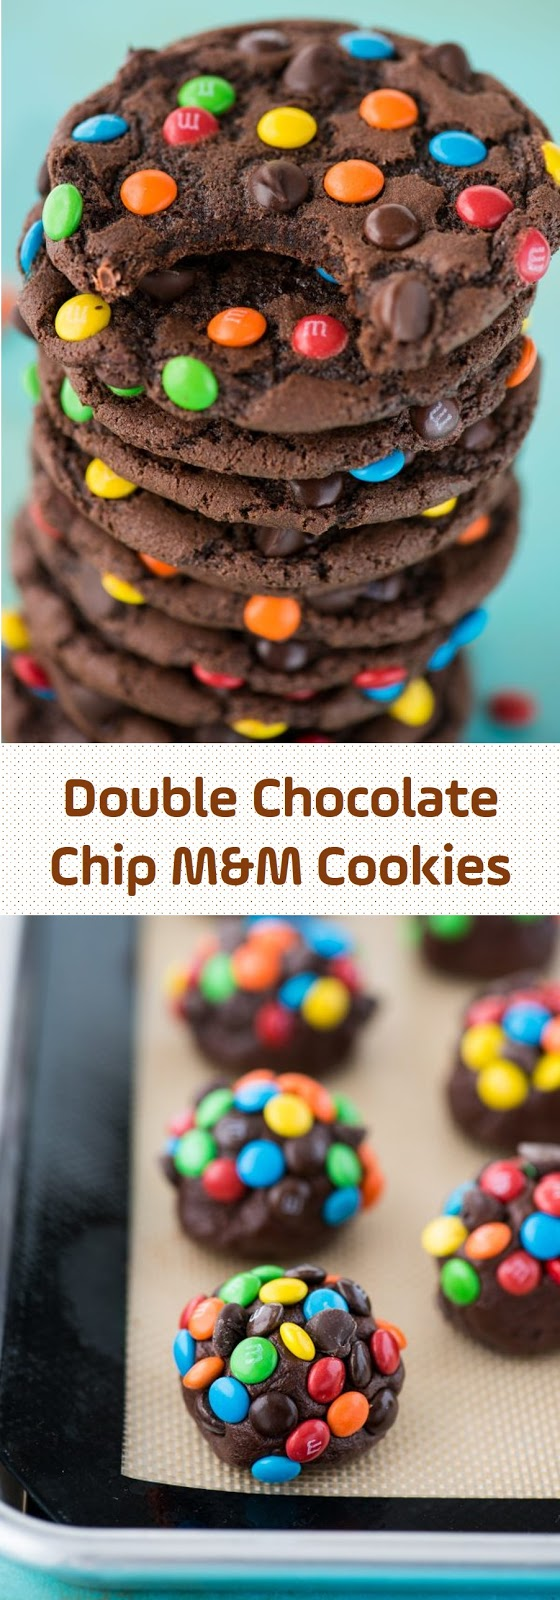 Photo of Doble Chocolate Chip M&M Cookies #chocolatechip #mandm